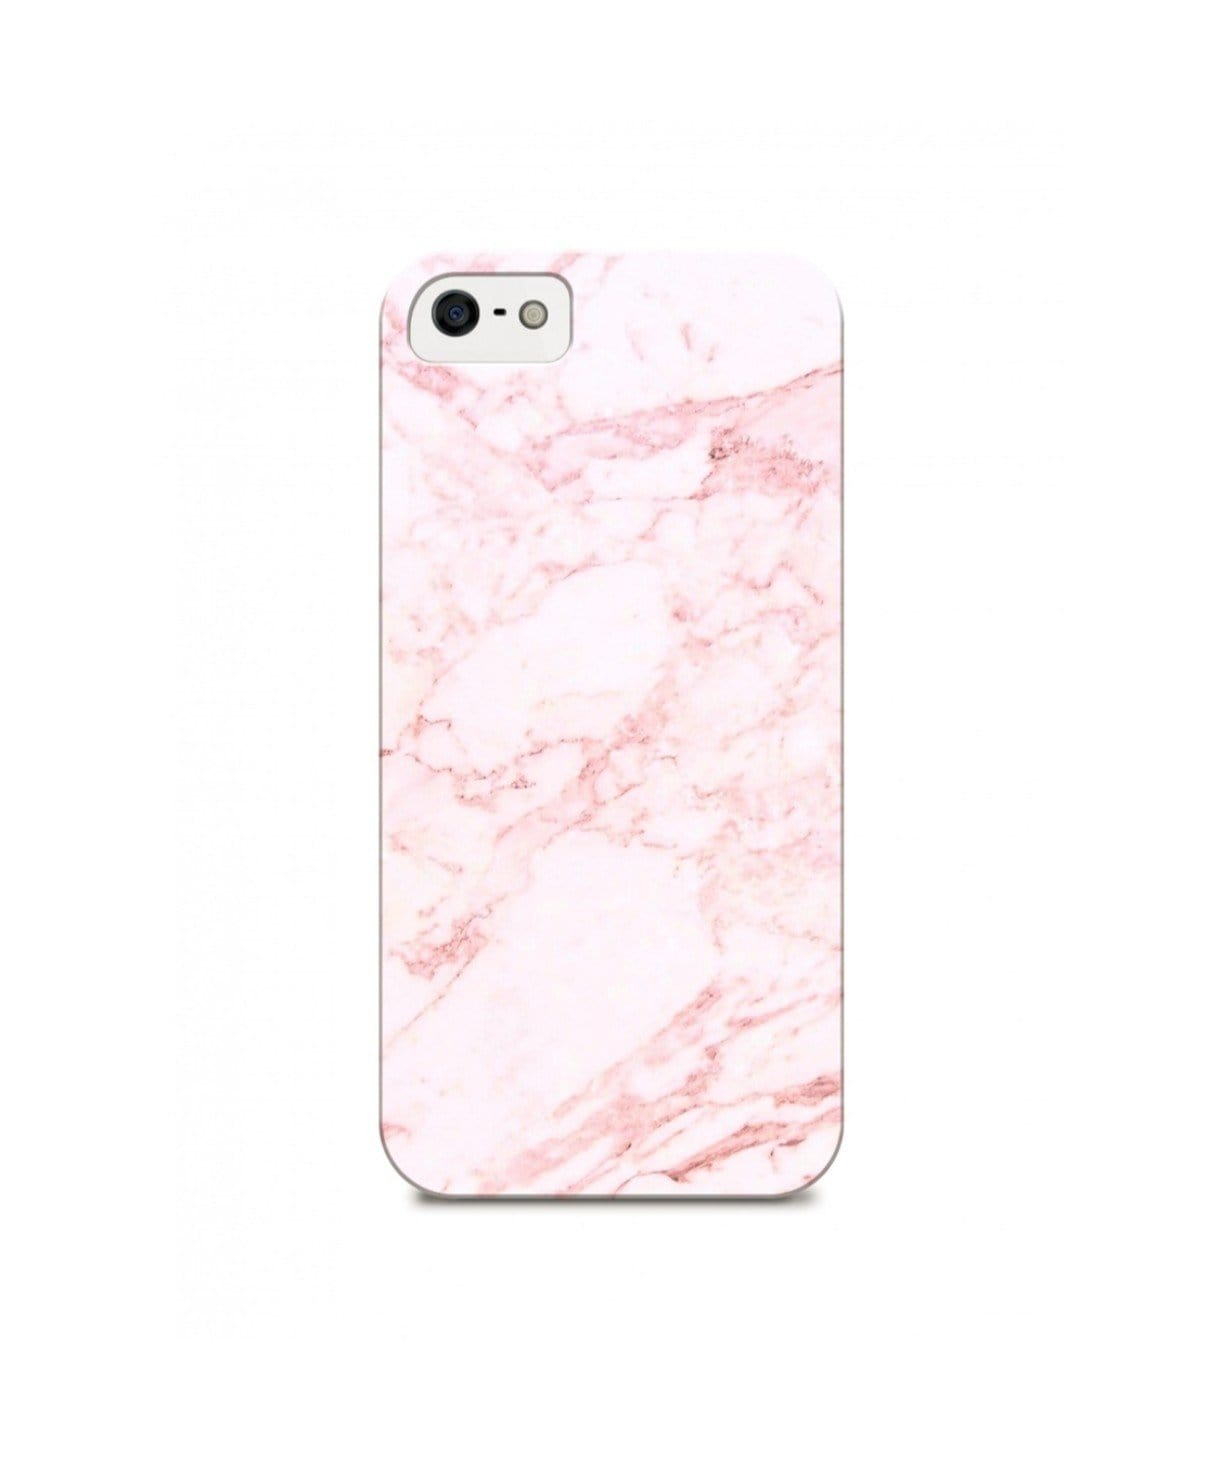 Pink Marble IPhone Cover (Personalisation Available) - Uptownie